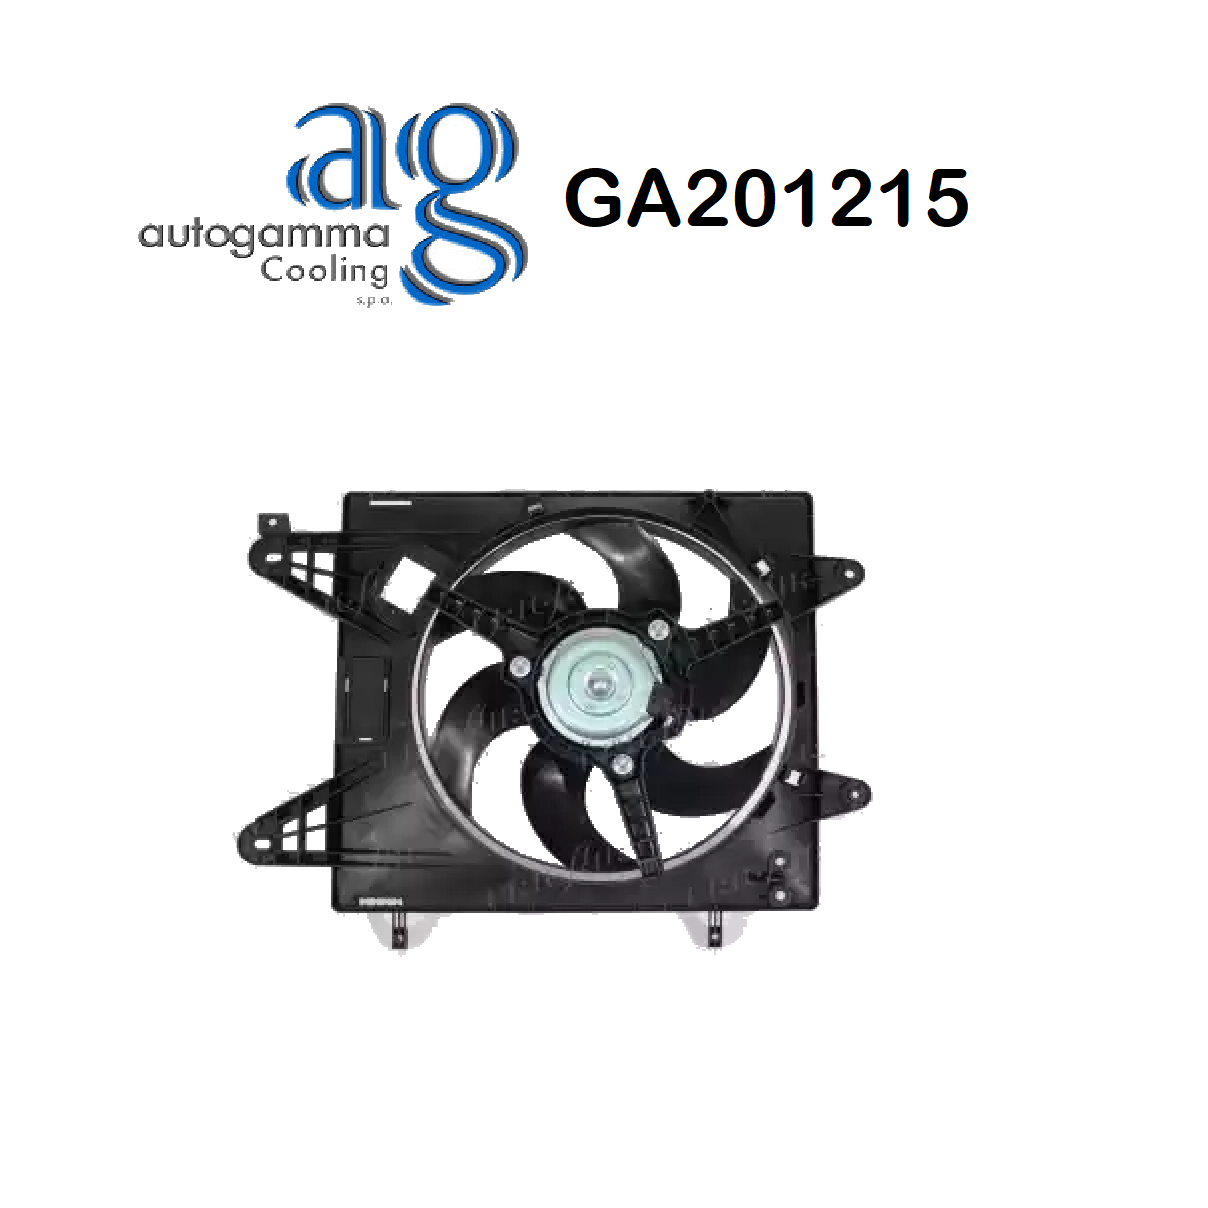 FIAT BRAVA - BRAVO ENGINE COOLING FAN - BRAVO - TIDE AUTOGAMMA FOR 46430980